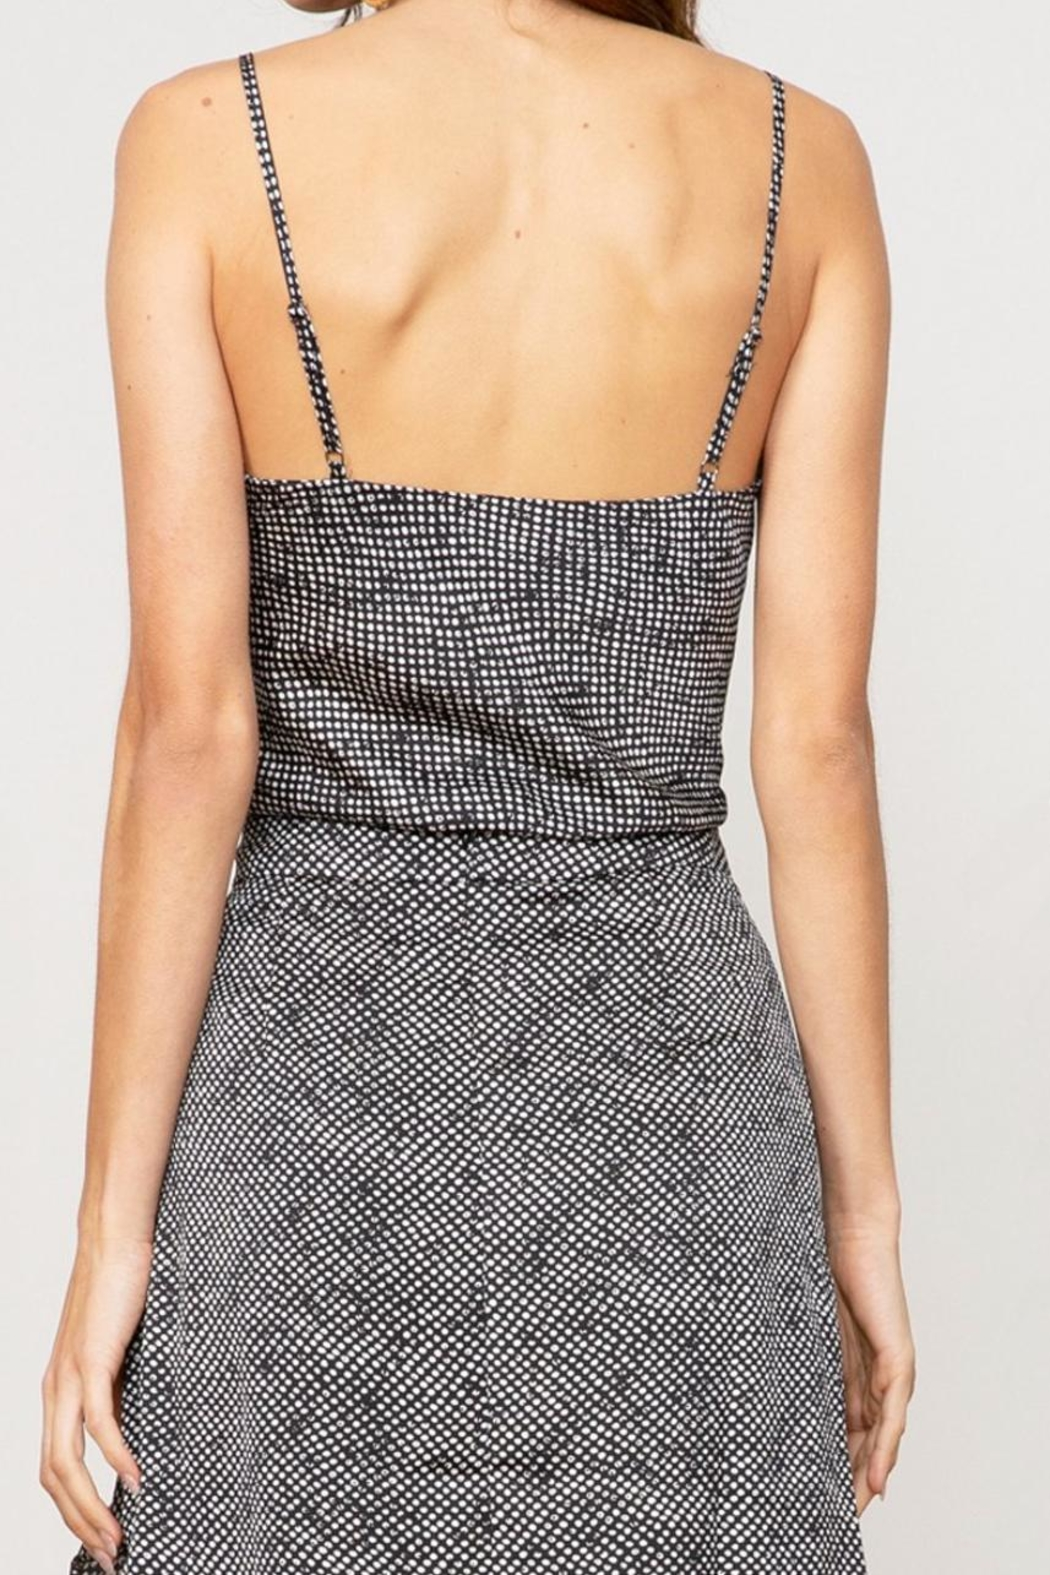 Lucy Paris Marion Polka Top - Side Cropped Image